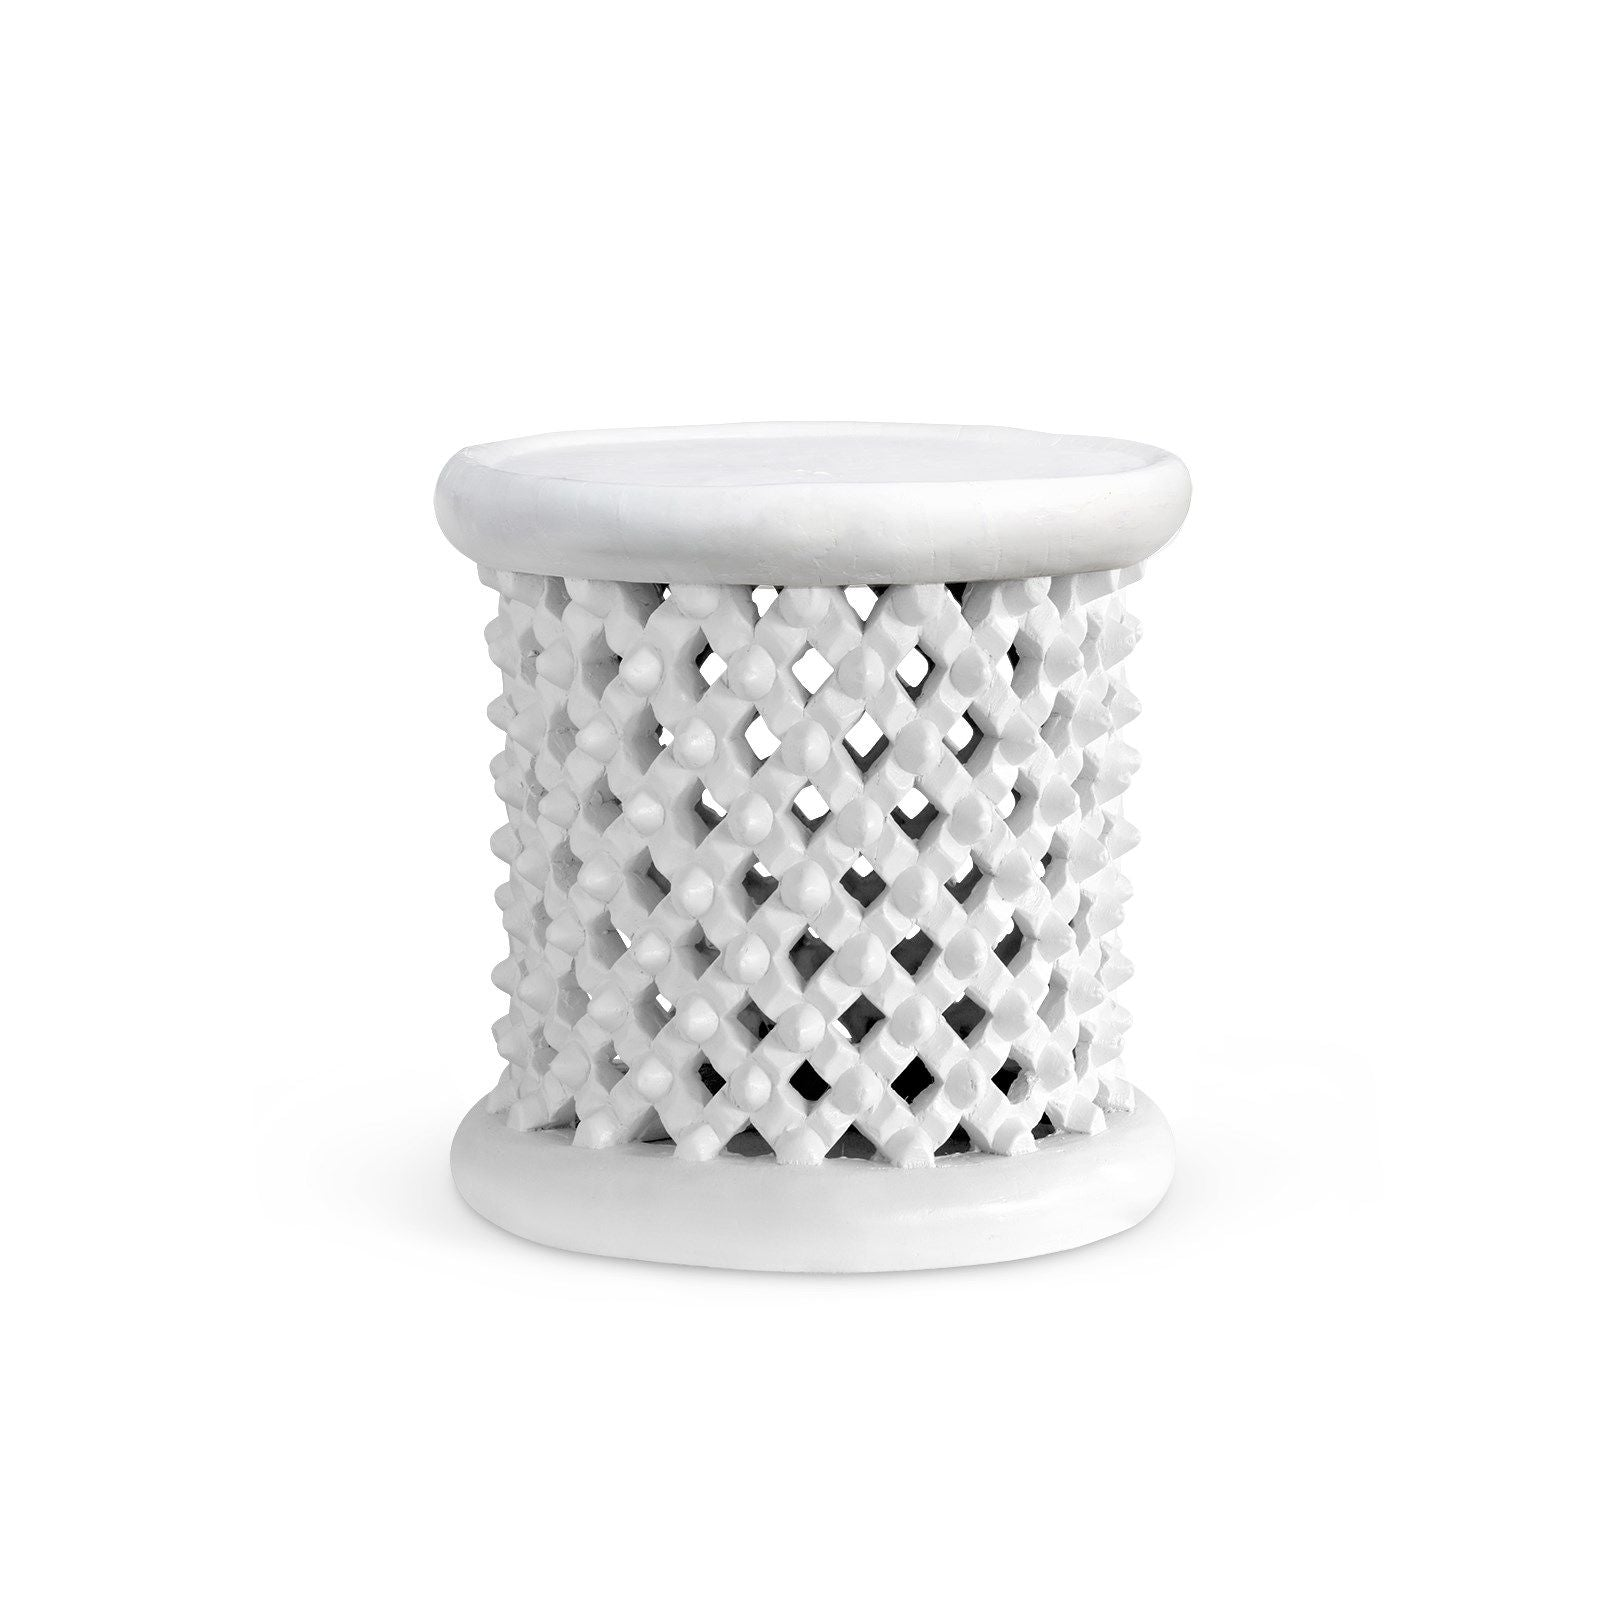 Bungalow 5 - KANO SIDE TABLE, WHITE